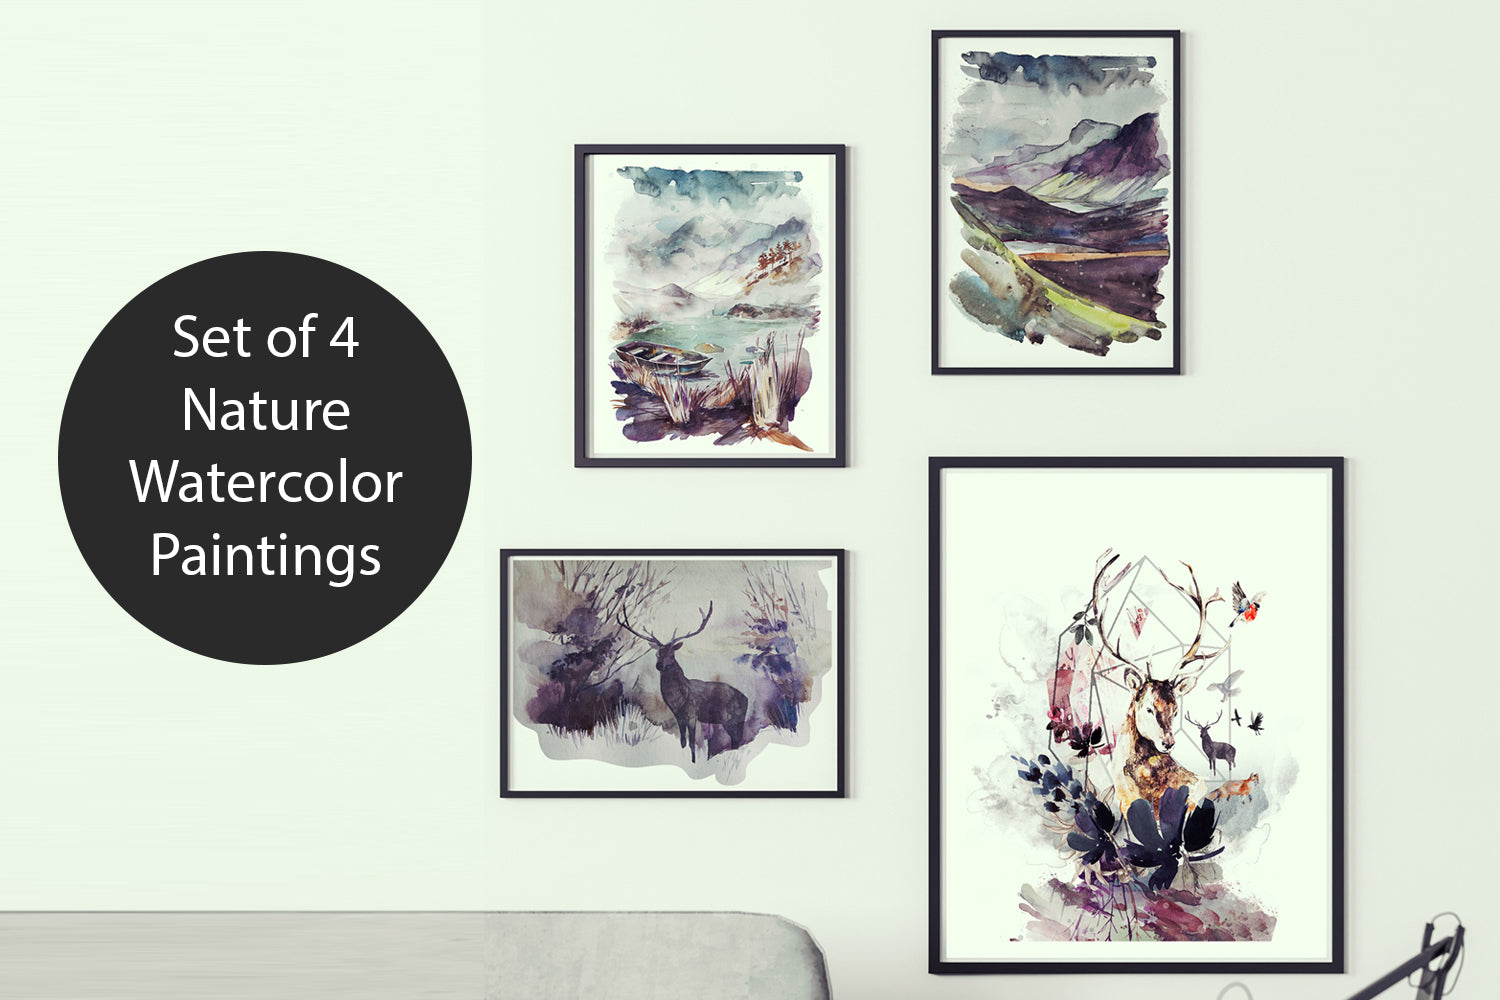 Set of Four Nature Watercolor Paintings, Canvas Designs, Painting Canvas Designs, Art Designs, Original and Prints